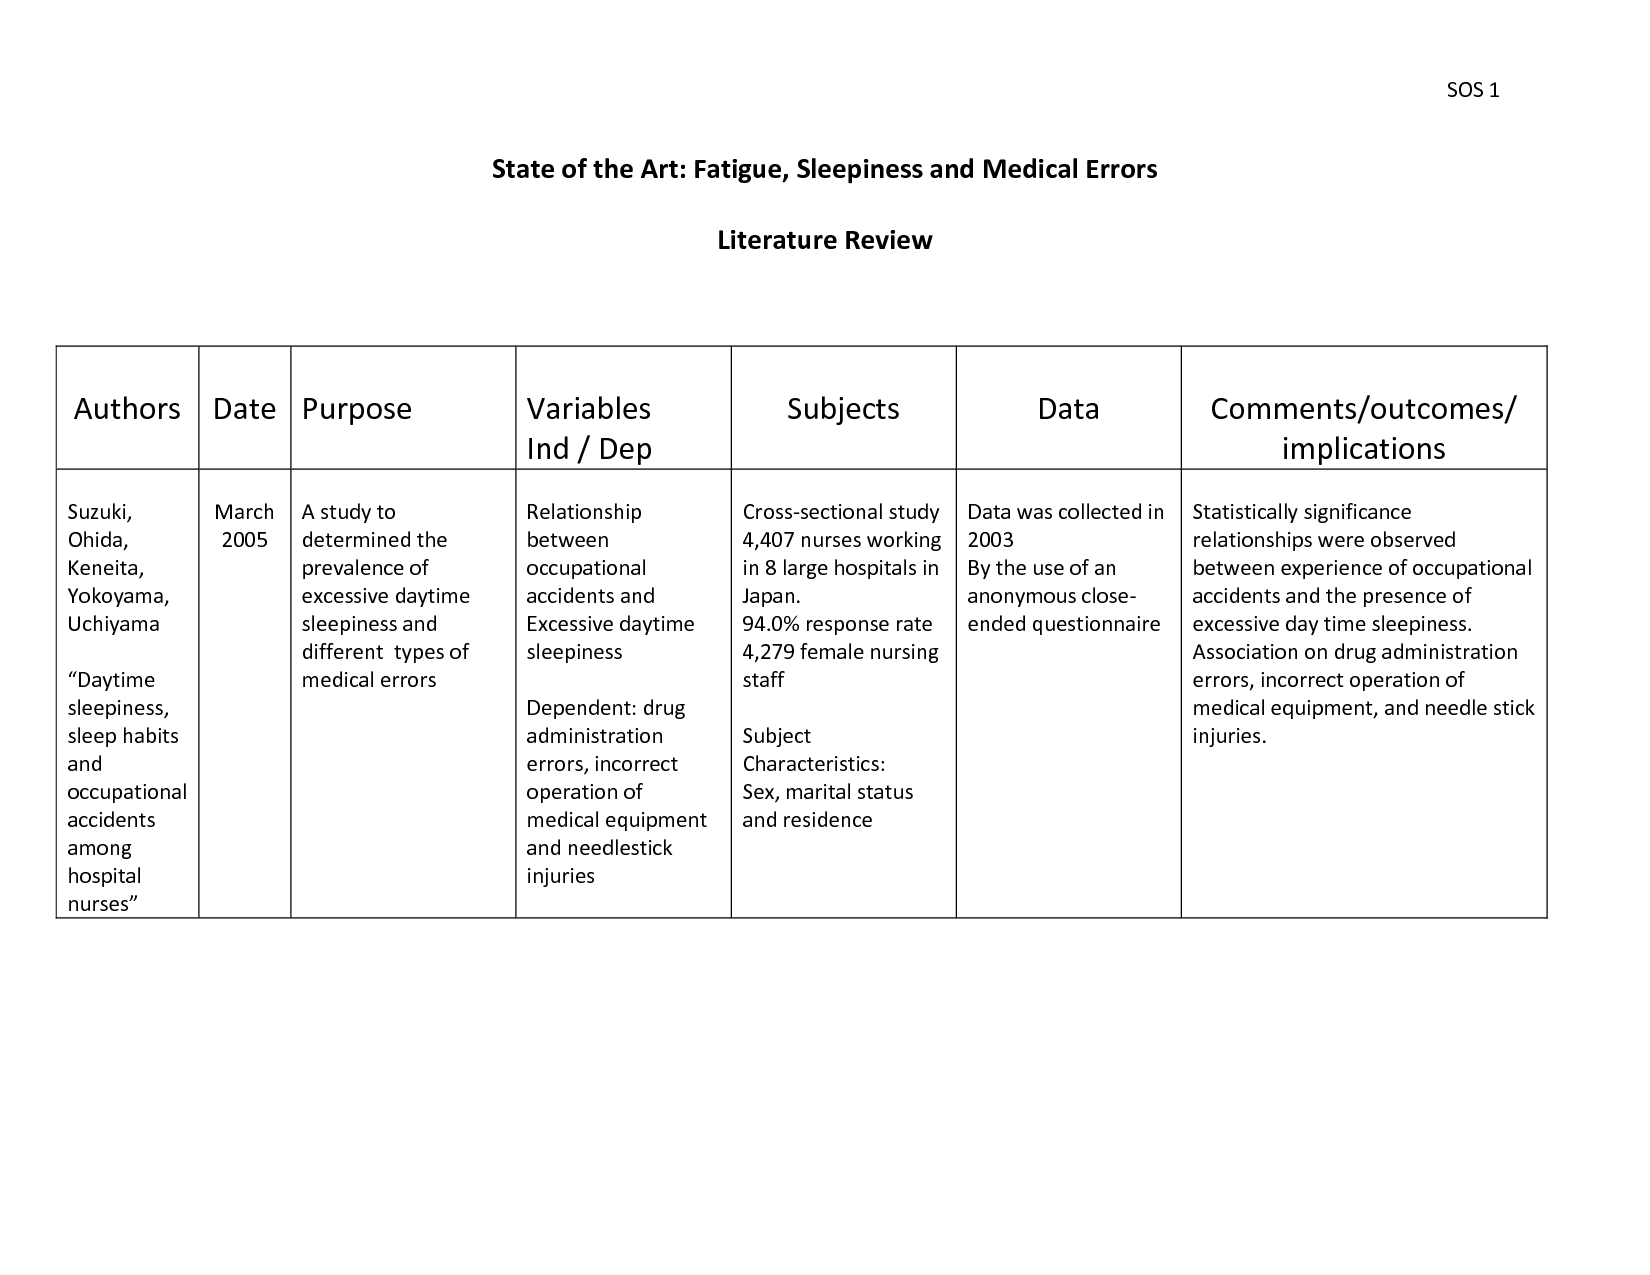 Literature Review Matrix | PhD | Pinterest | Literature